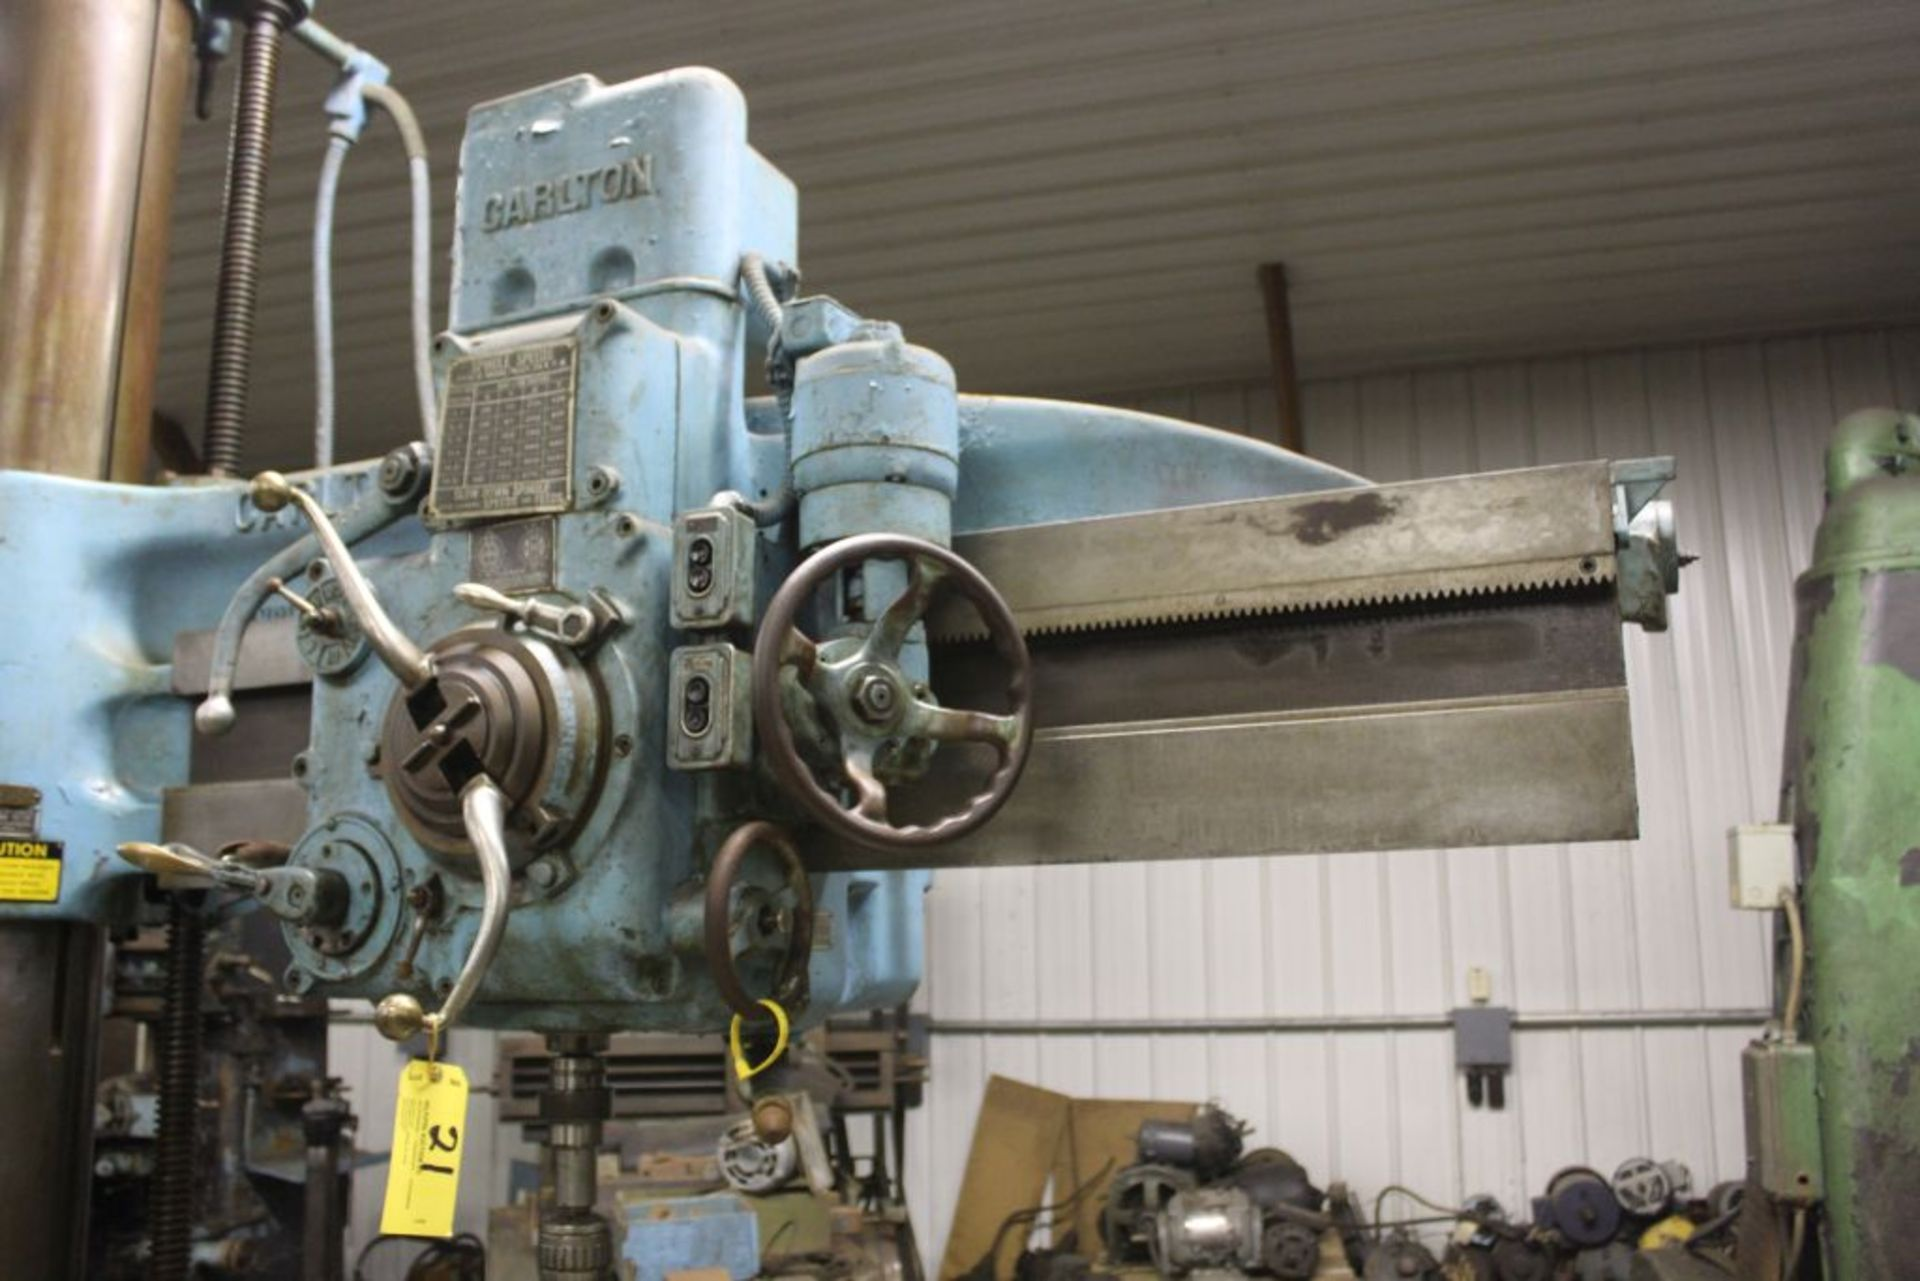 """Carlton radial arm drill, 5' arm, 11"""" column, 9' 9"""" total height, 36"""" x 53"""" bed, misc. tooling. - Image 5 of 8"""